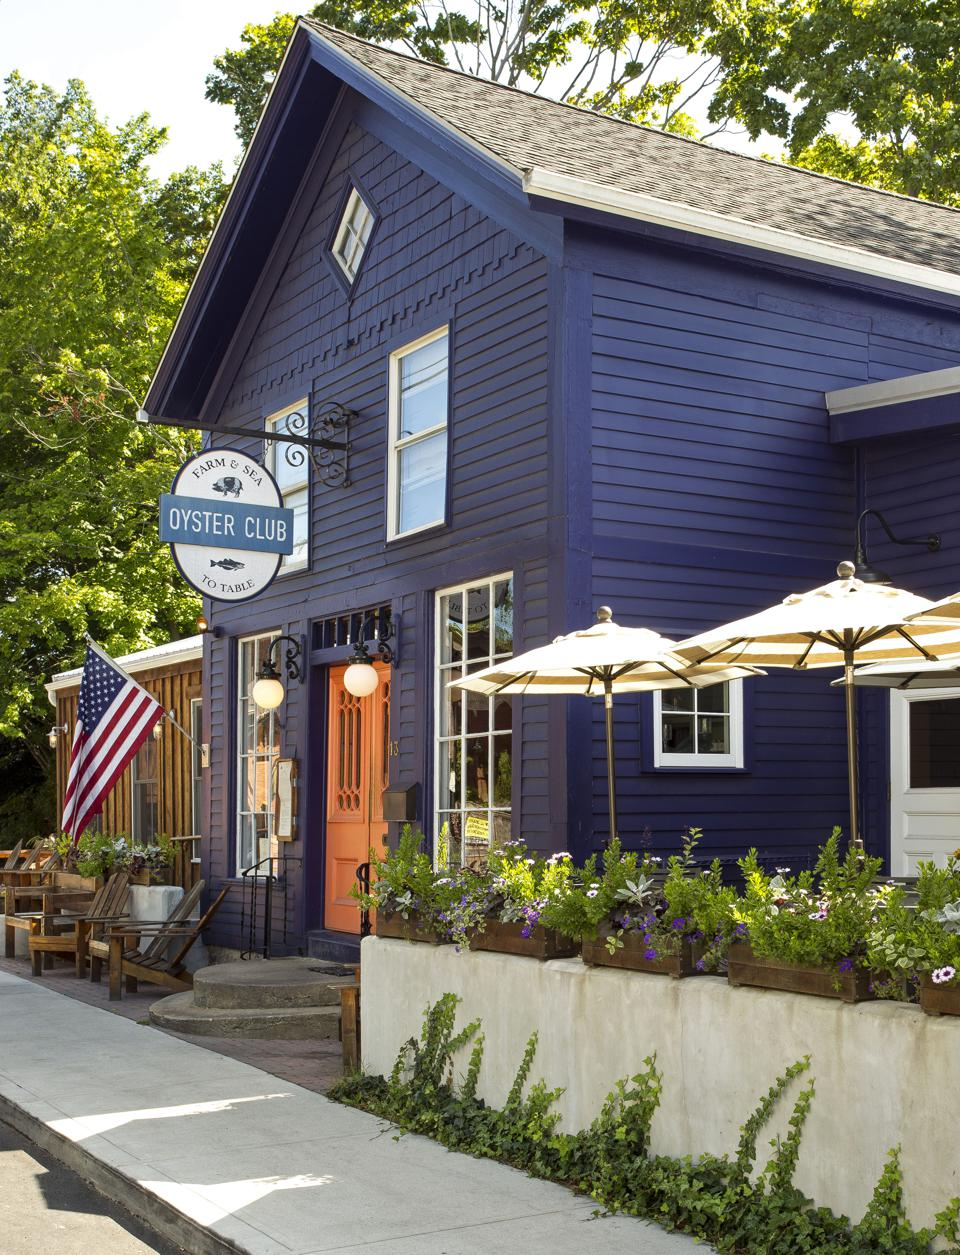 Oyster Club is set in a restored carriage house, and has been lauded to have some of the best oysters in America.